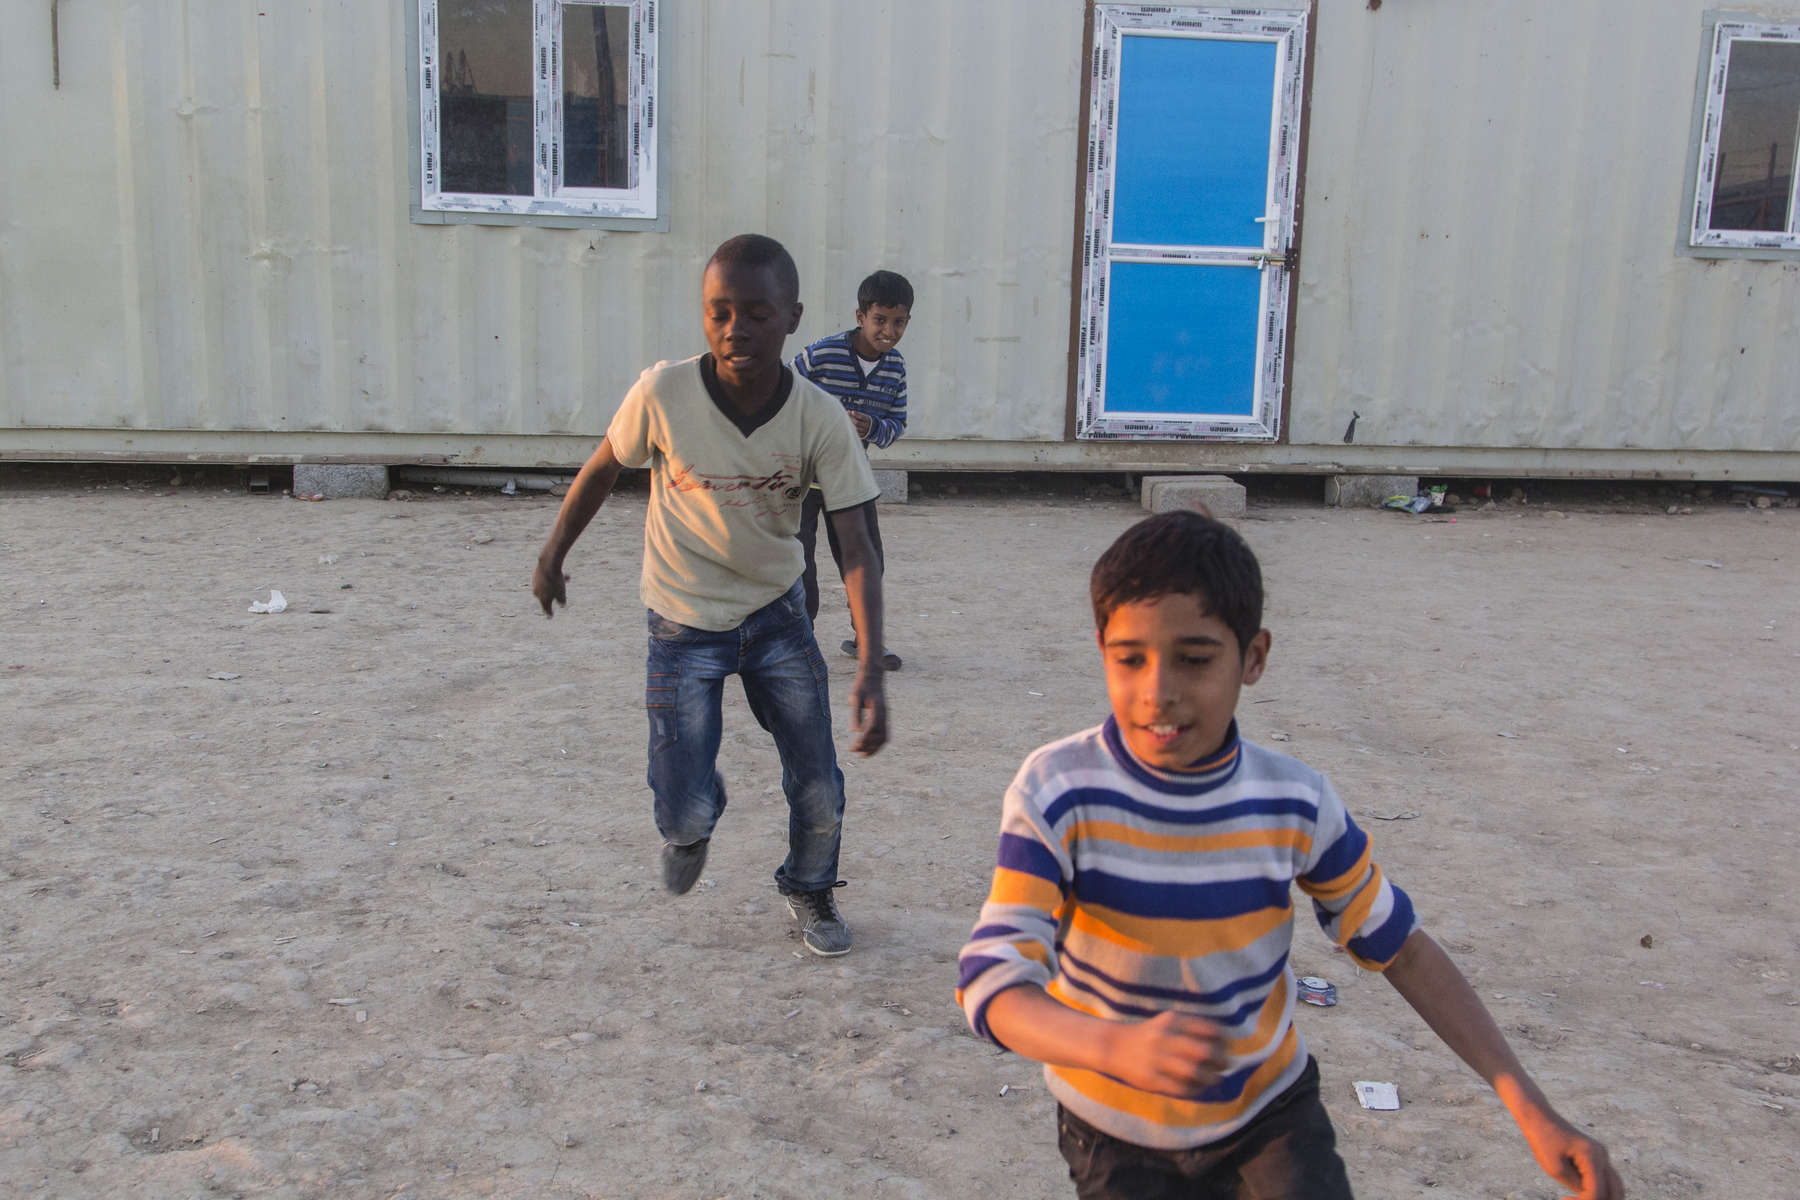 20/01/2015 -- Kirkuk, Iraq -- Omer playis football with his friends on the camps ground.